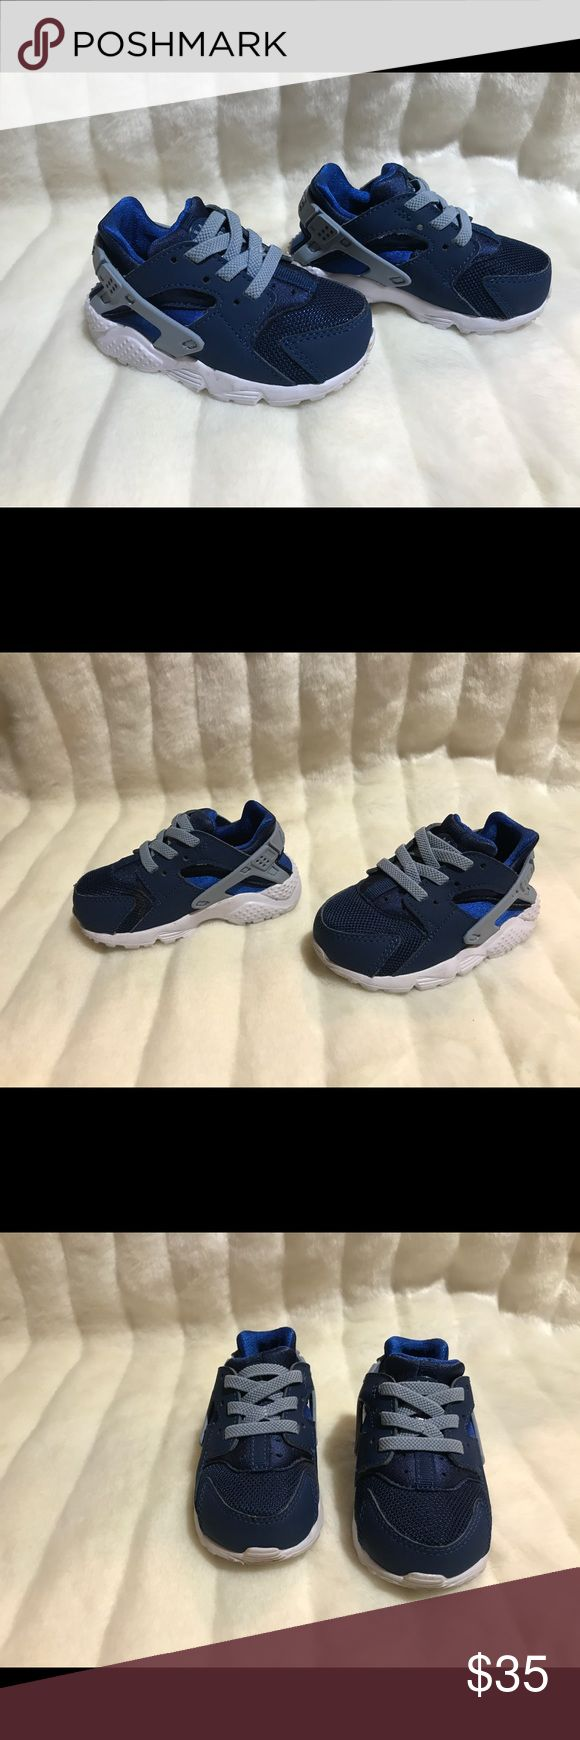 Toddler Nike Air Huarache Blue and White Size 5C Preowned and in great shape. DOES NOT COME WITH BOX. Like new condition. Very comfy sneakers for the kids Nike Shoes Sneakers